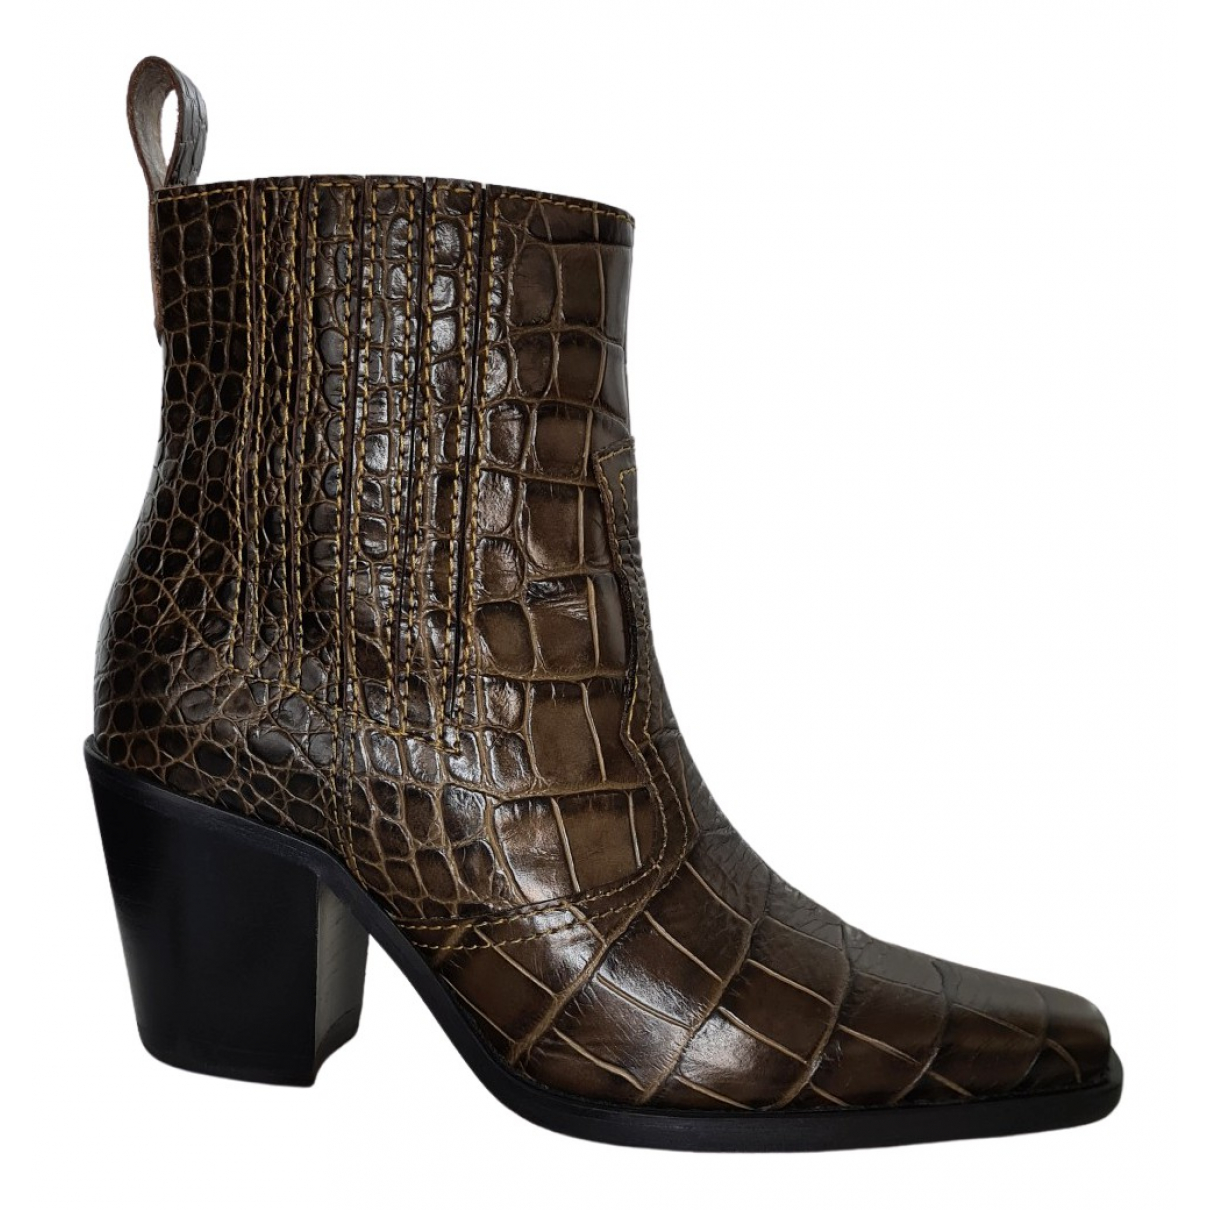 Ganni N Brown Leather Boots for Women 37 EU